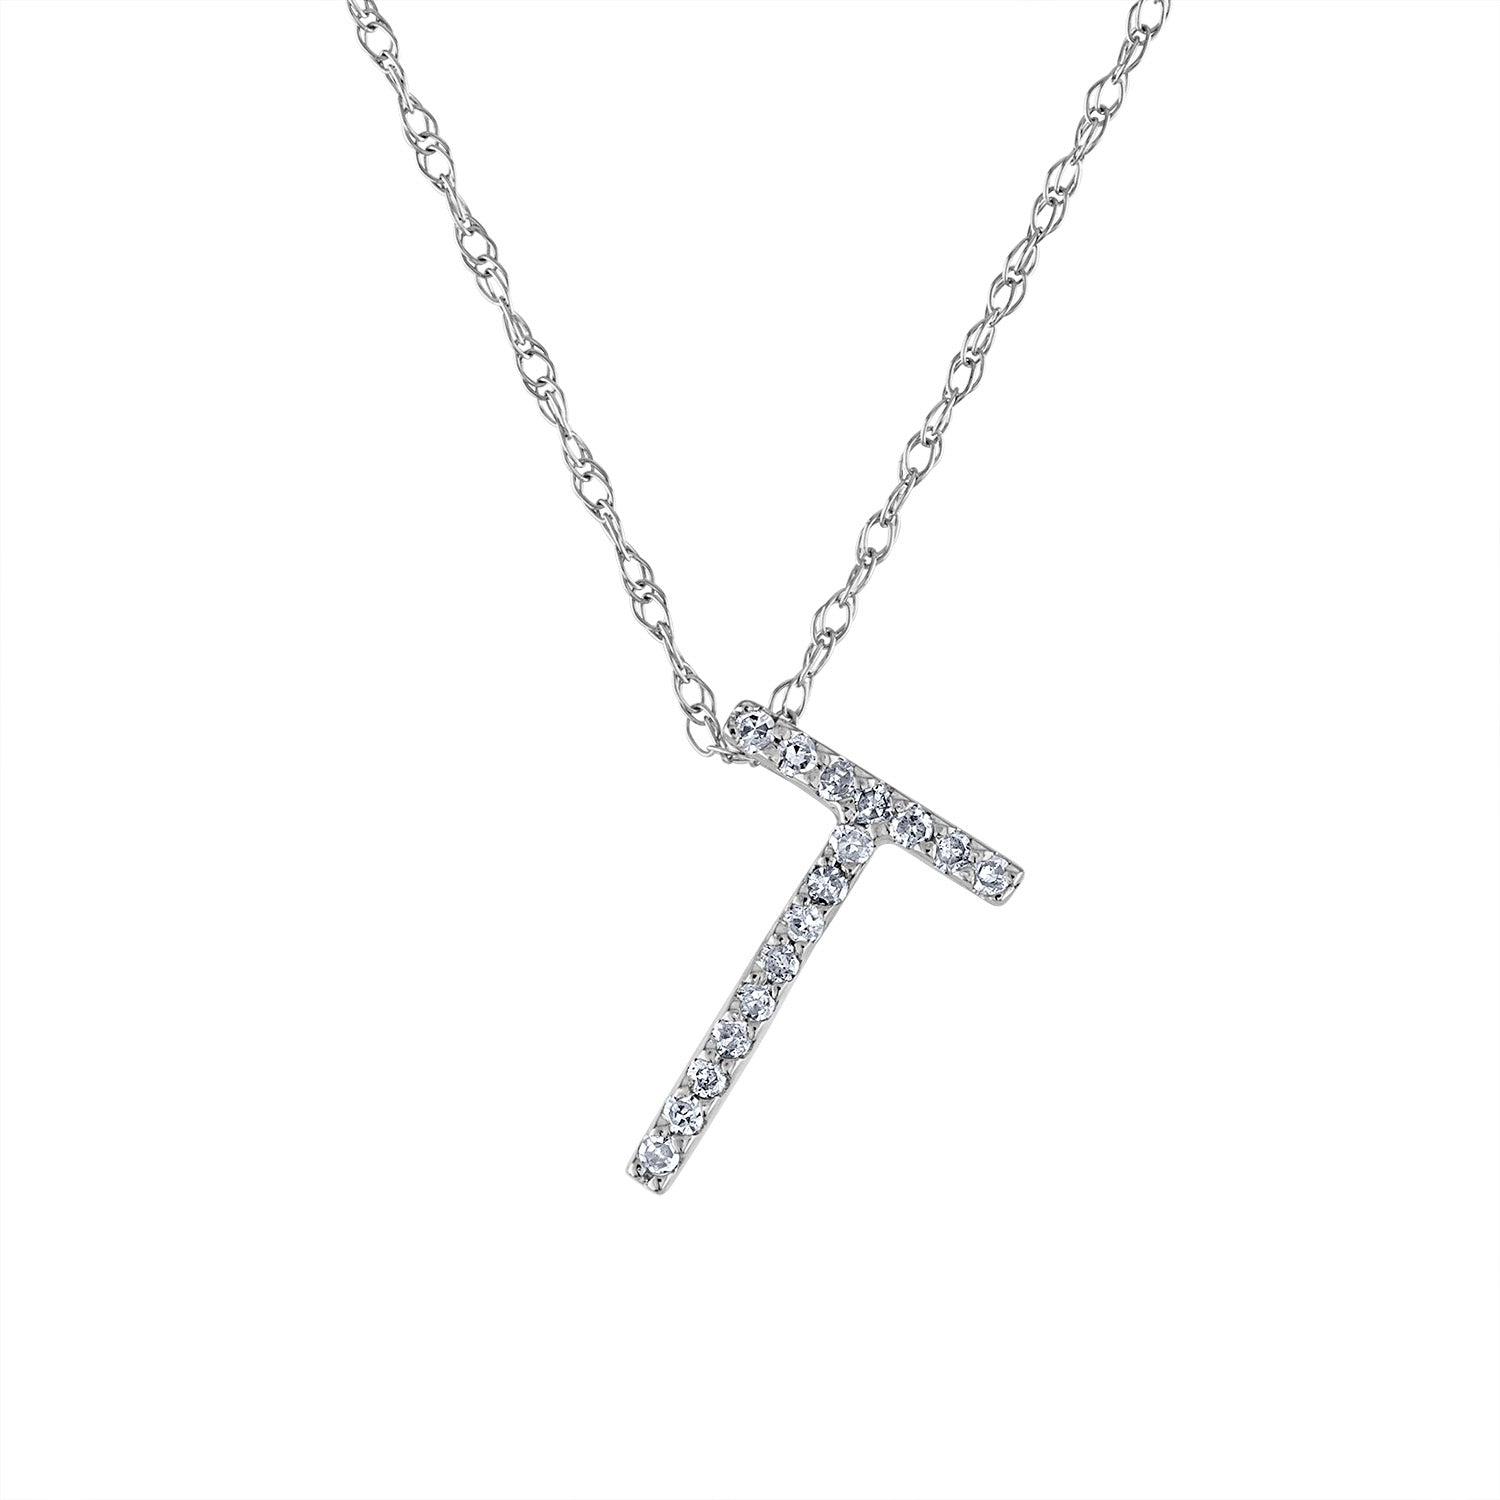 14k White Gold diamond initial T necklace